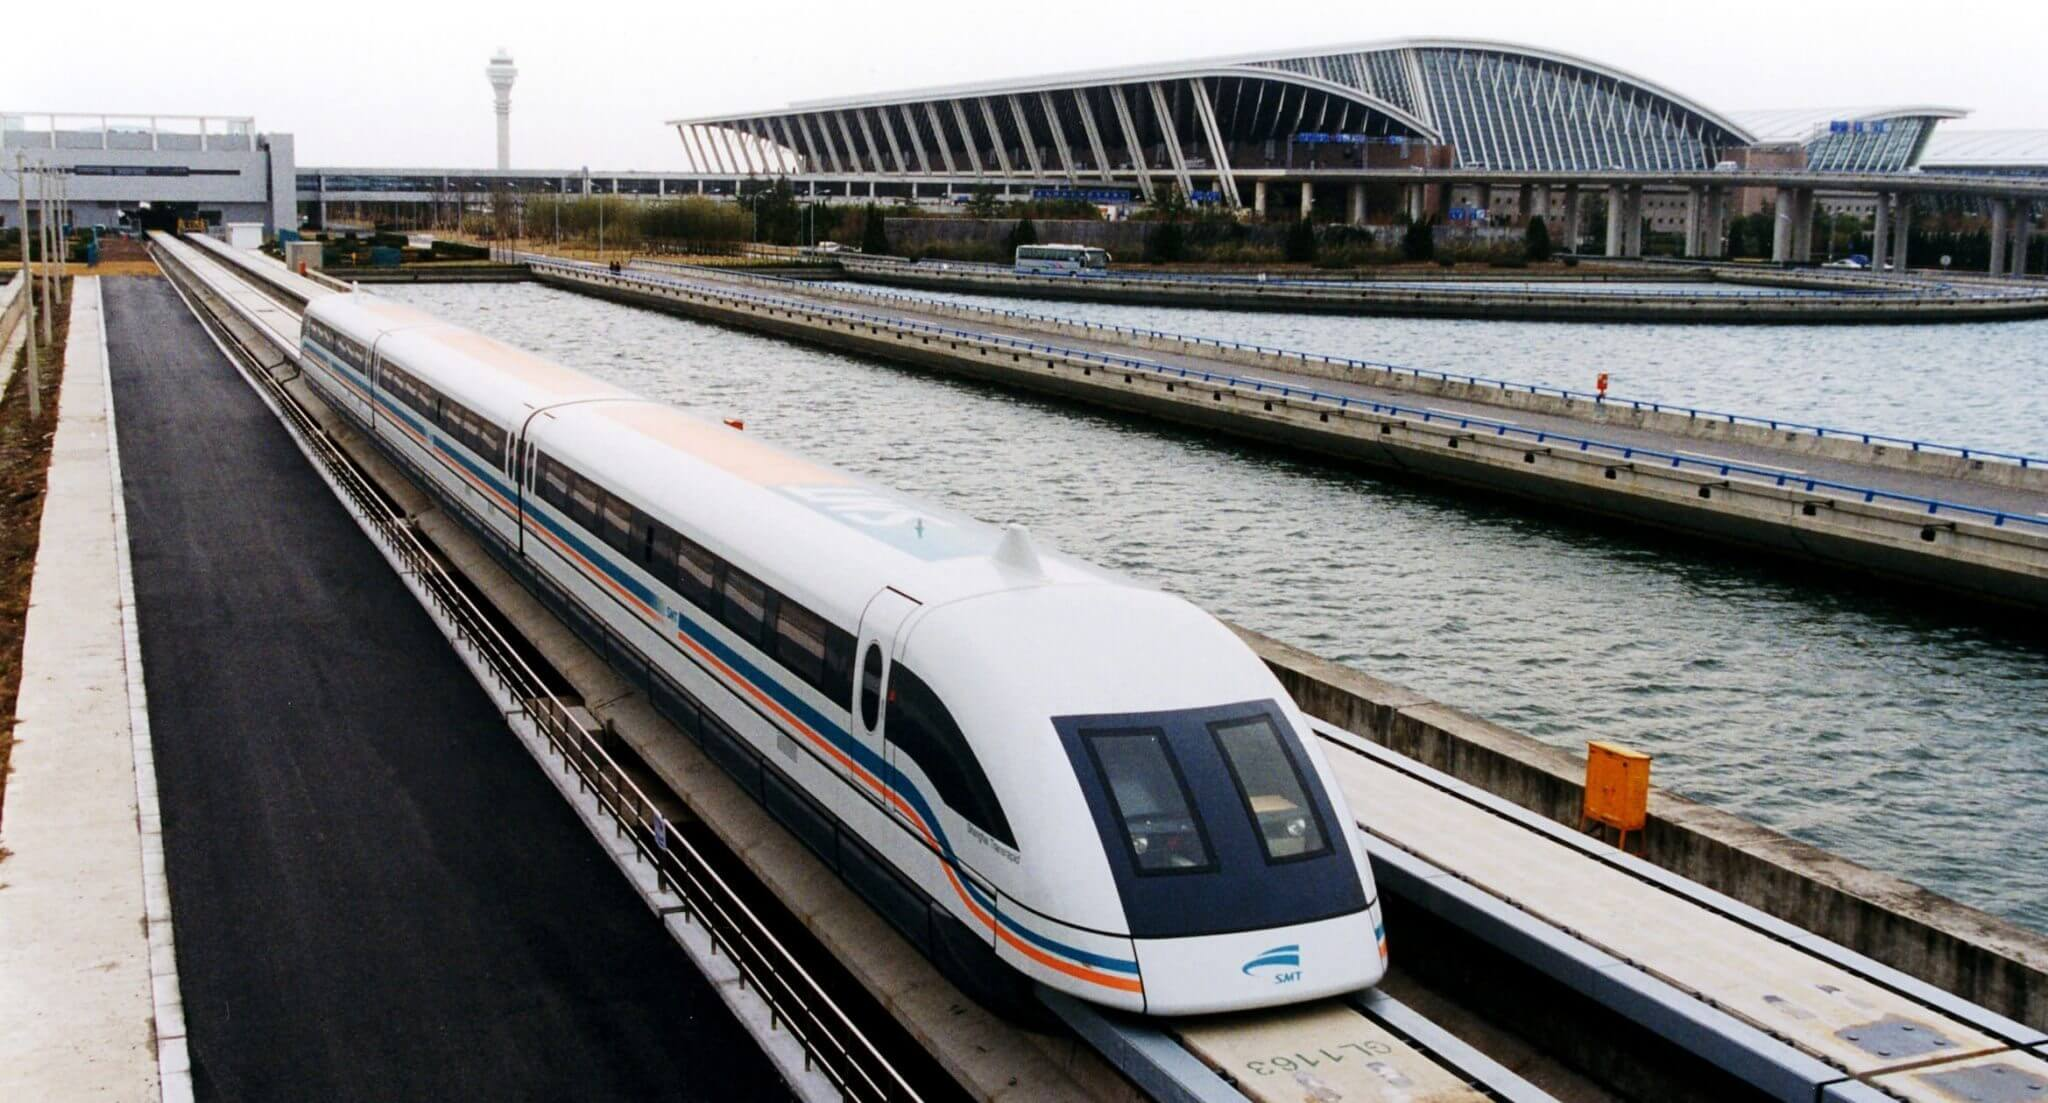 A maglev train coming out Pudong International Airport Shanghai